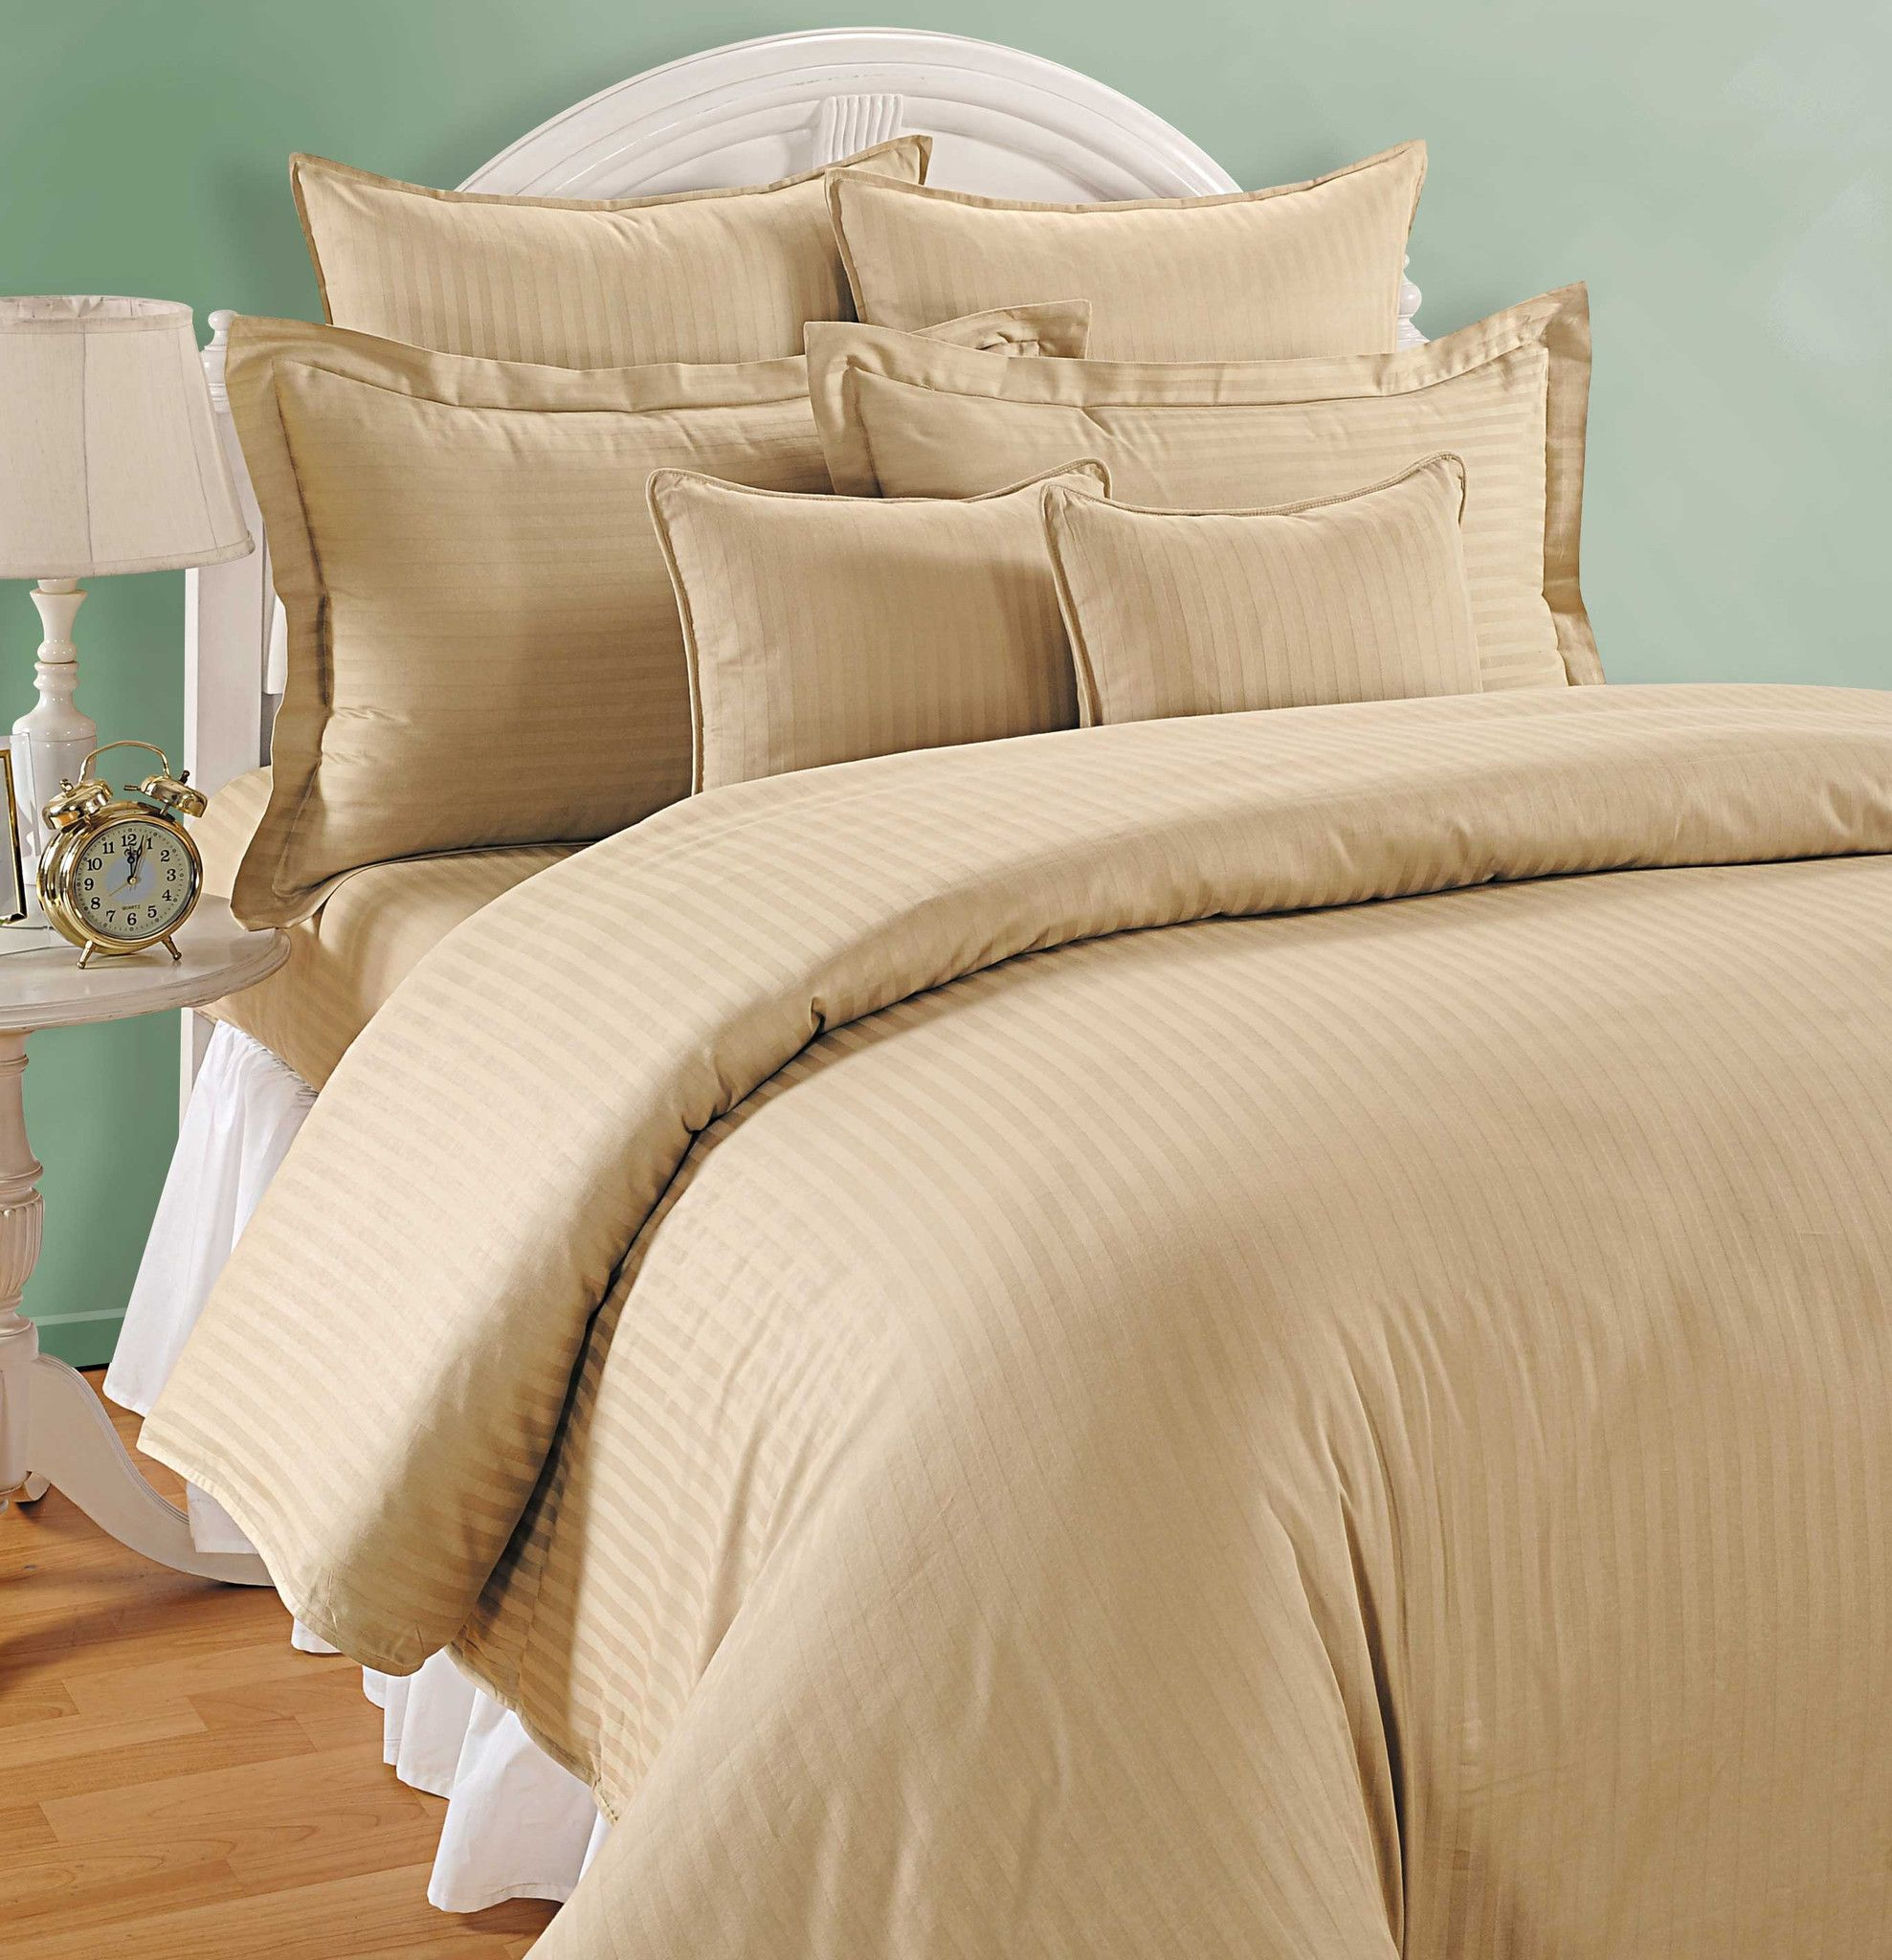 Beige duvet covers canopus Fitted bed sheets, Double